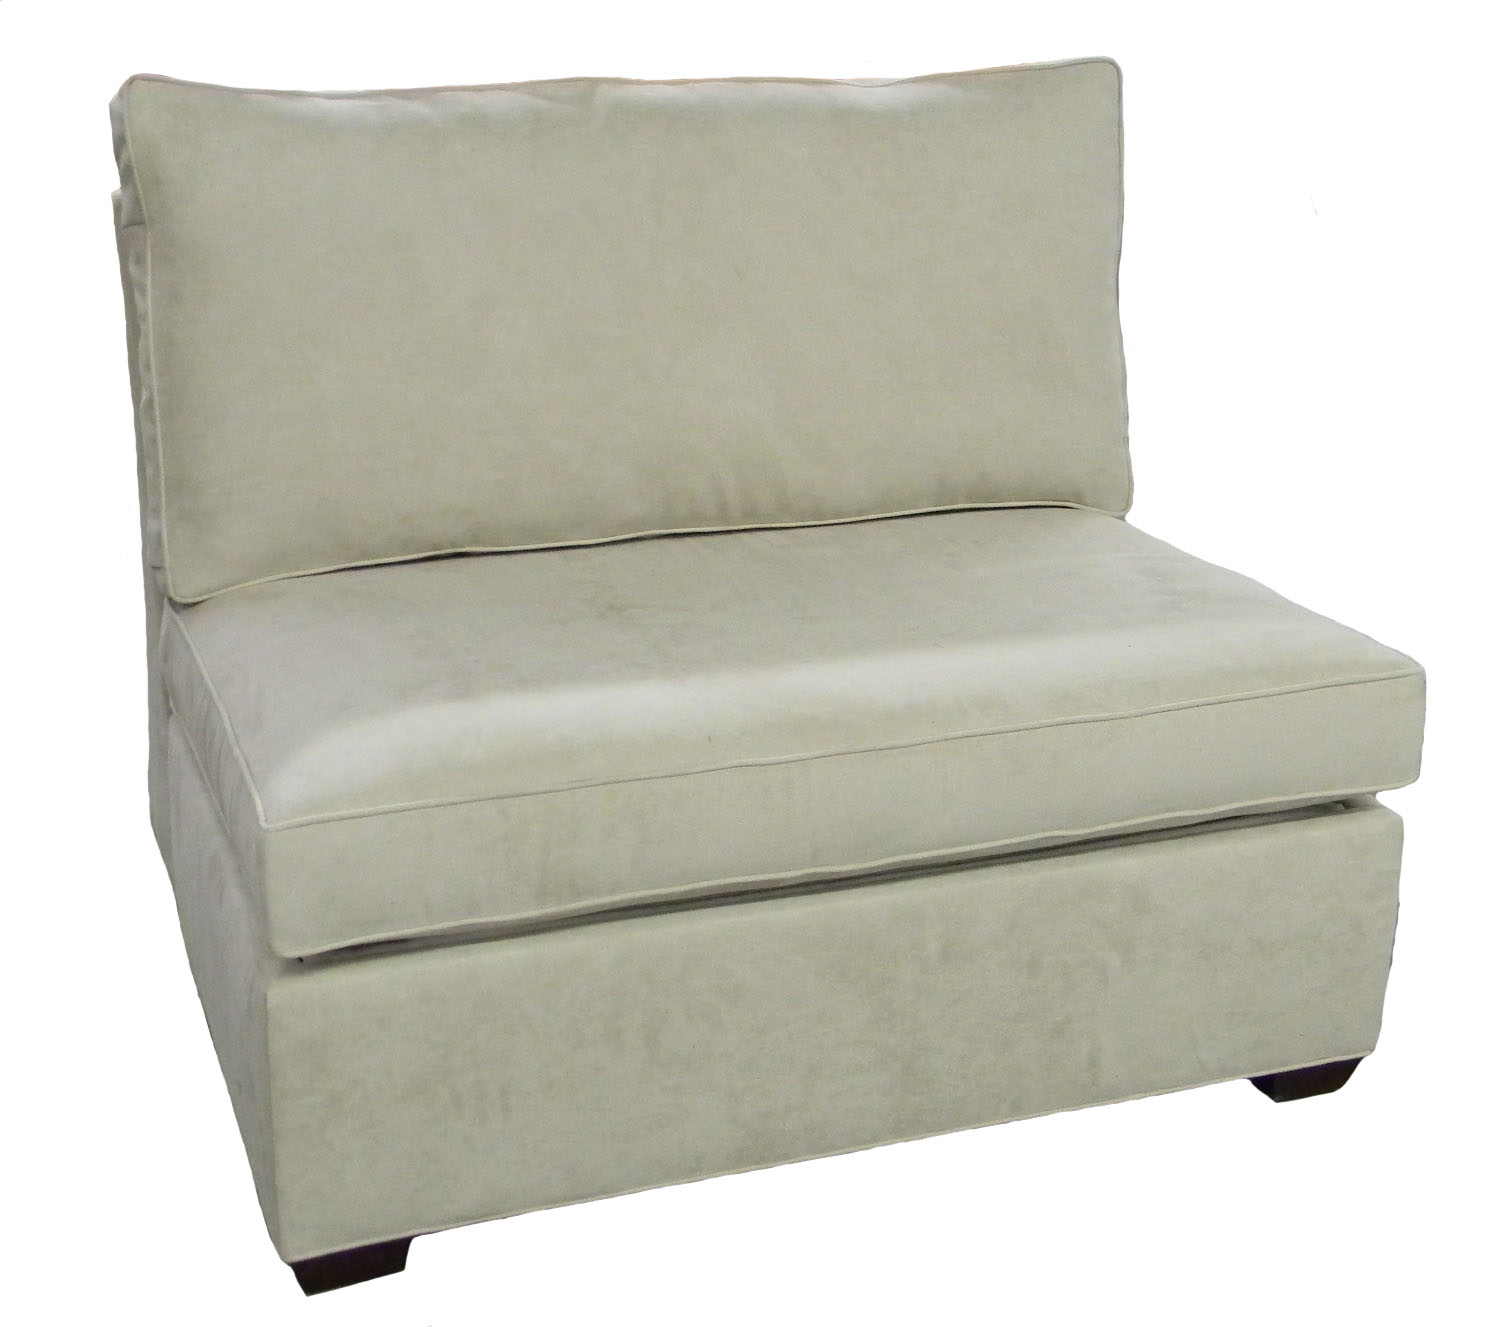 Crawford Sectional Armless Single Sleeper Sofa Carolina Chair